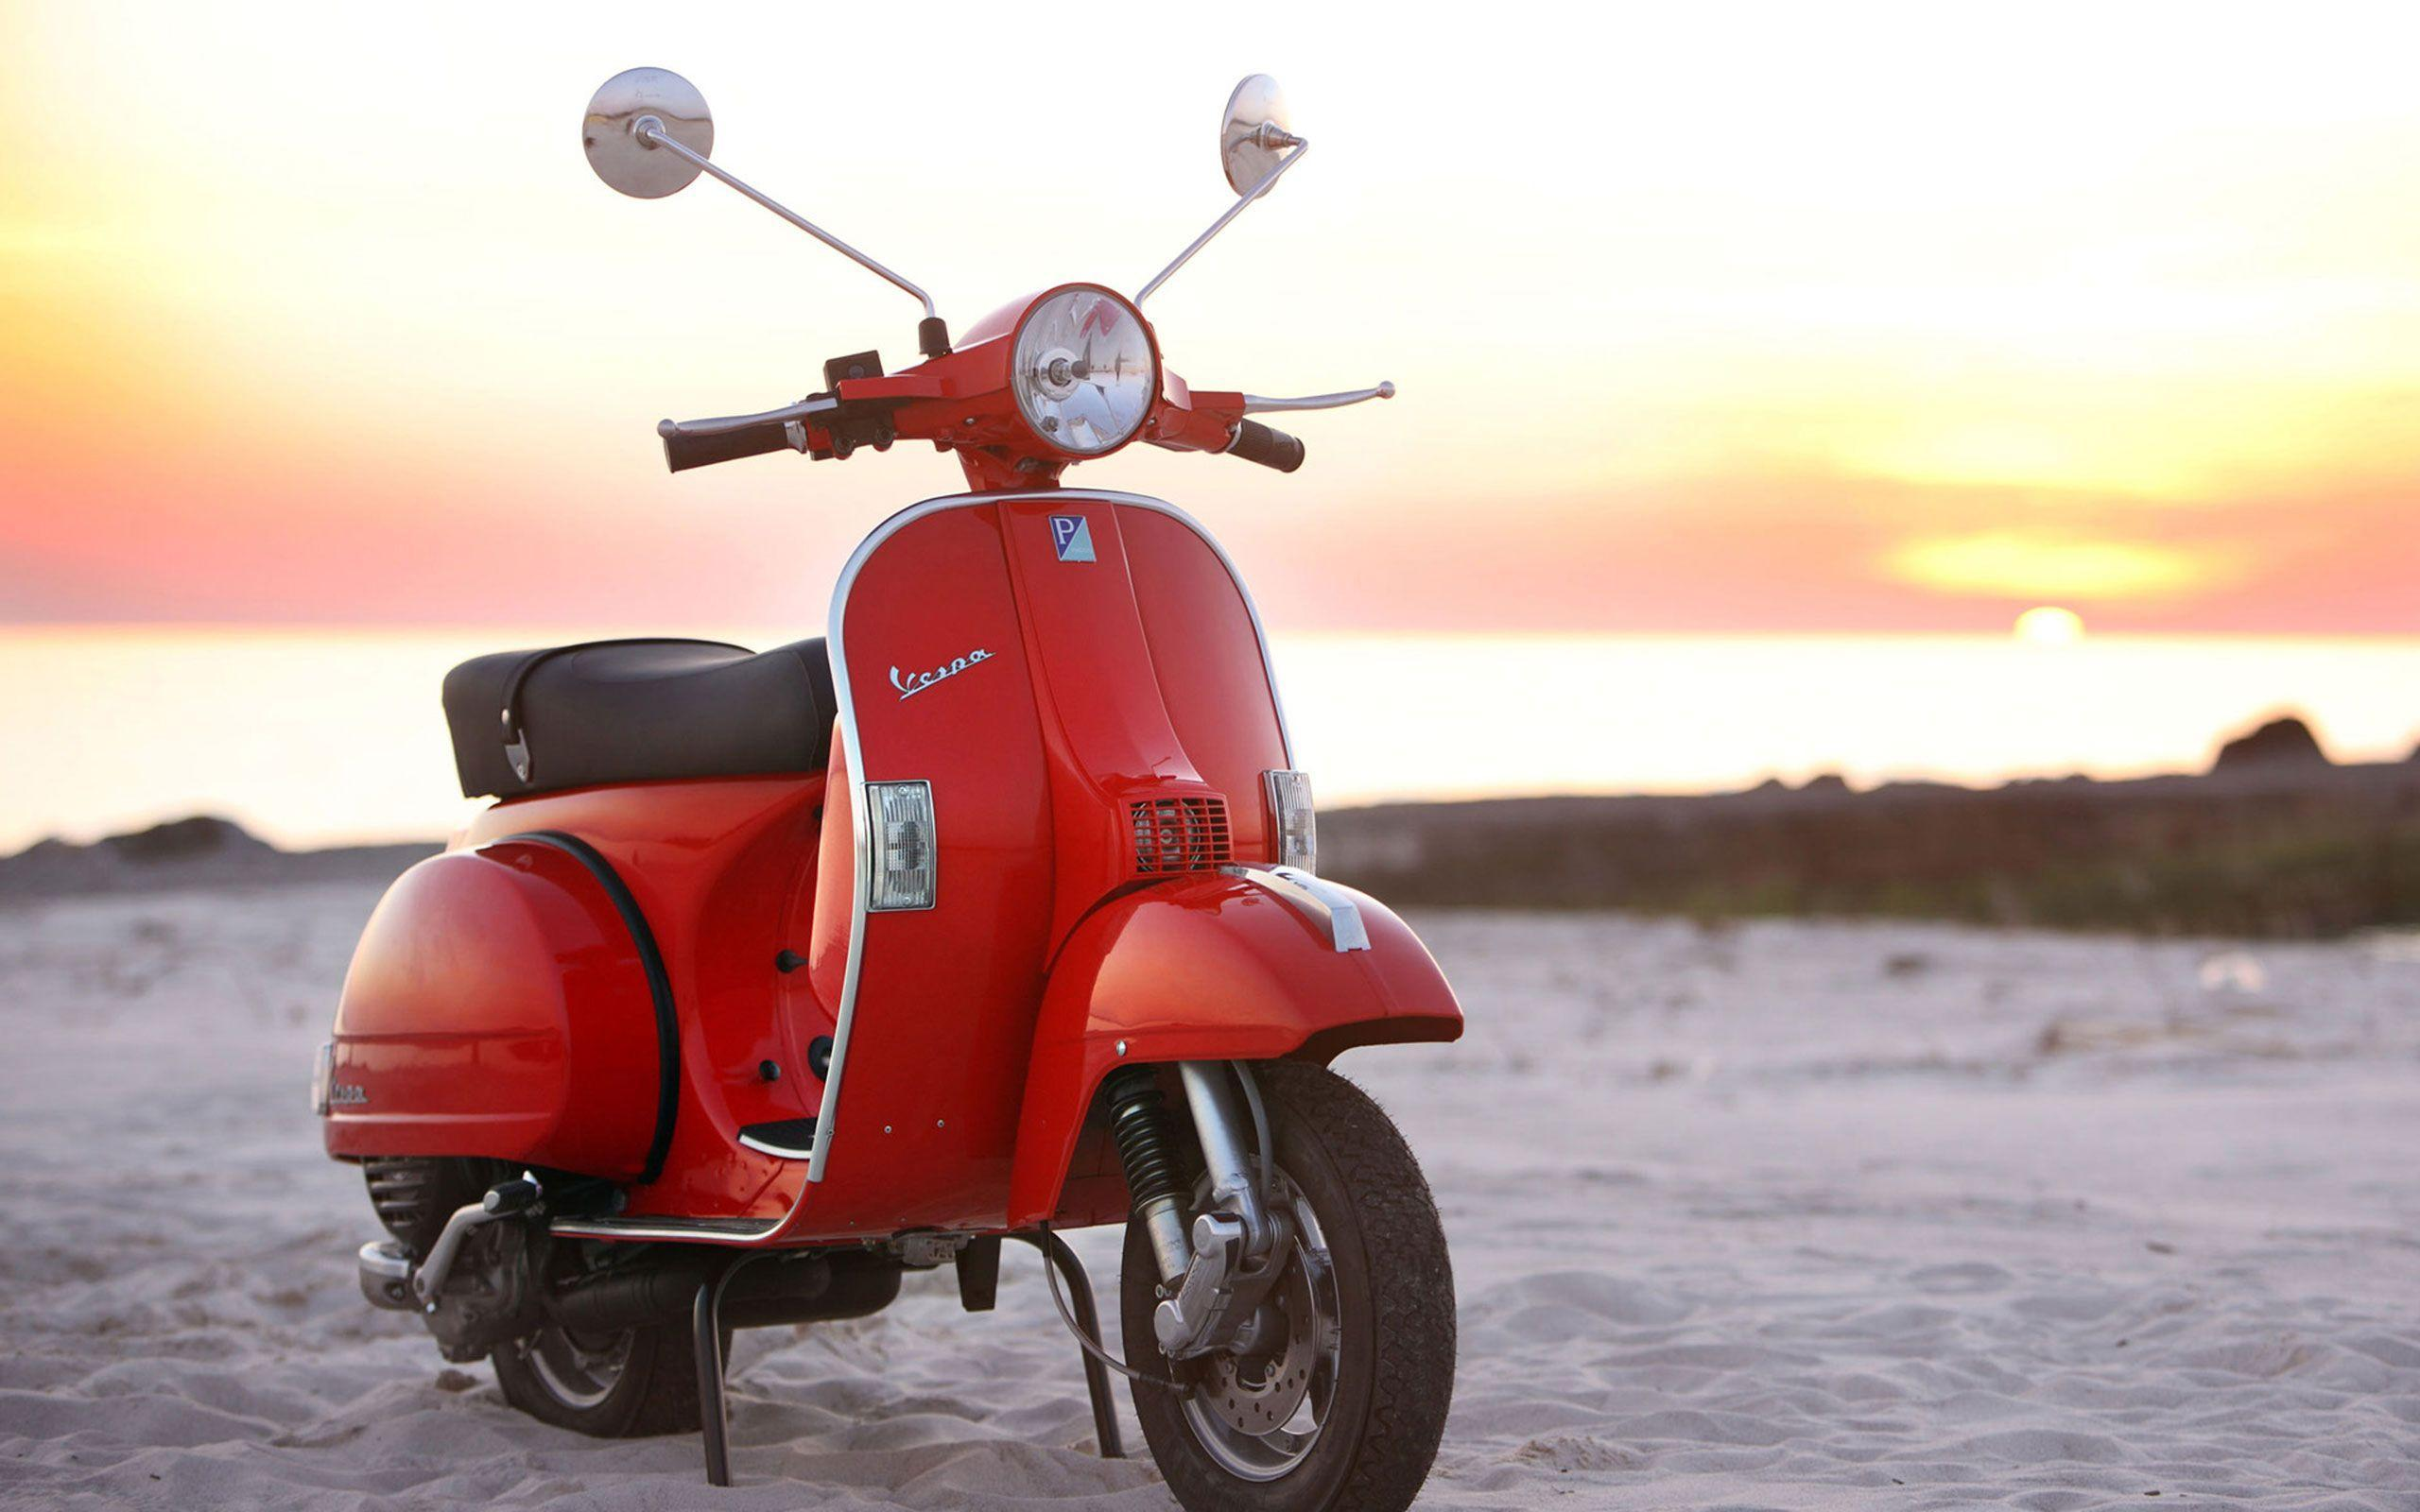 A Vespa PX 125 motorcycles HD Wallpaper 2560x1600 | Hot HD Wallpaper